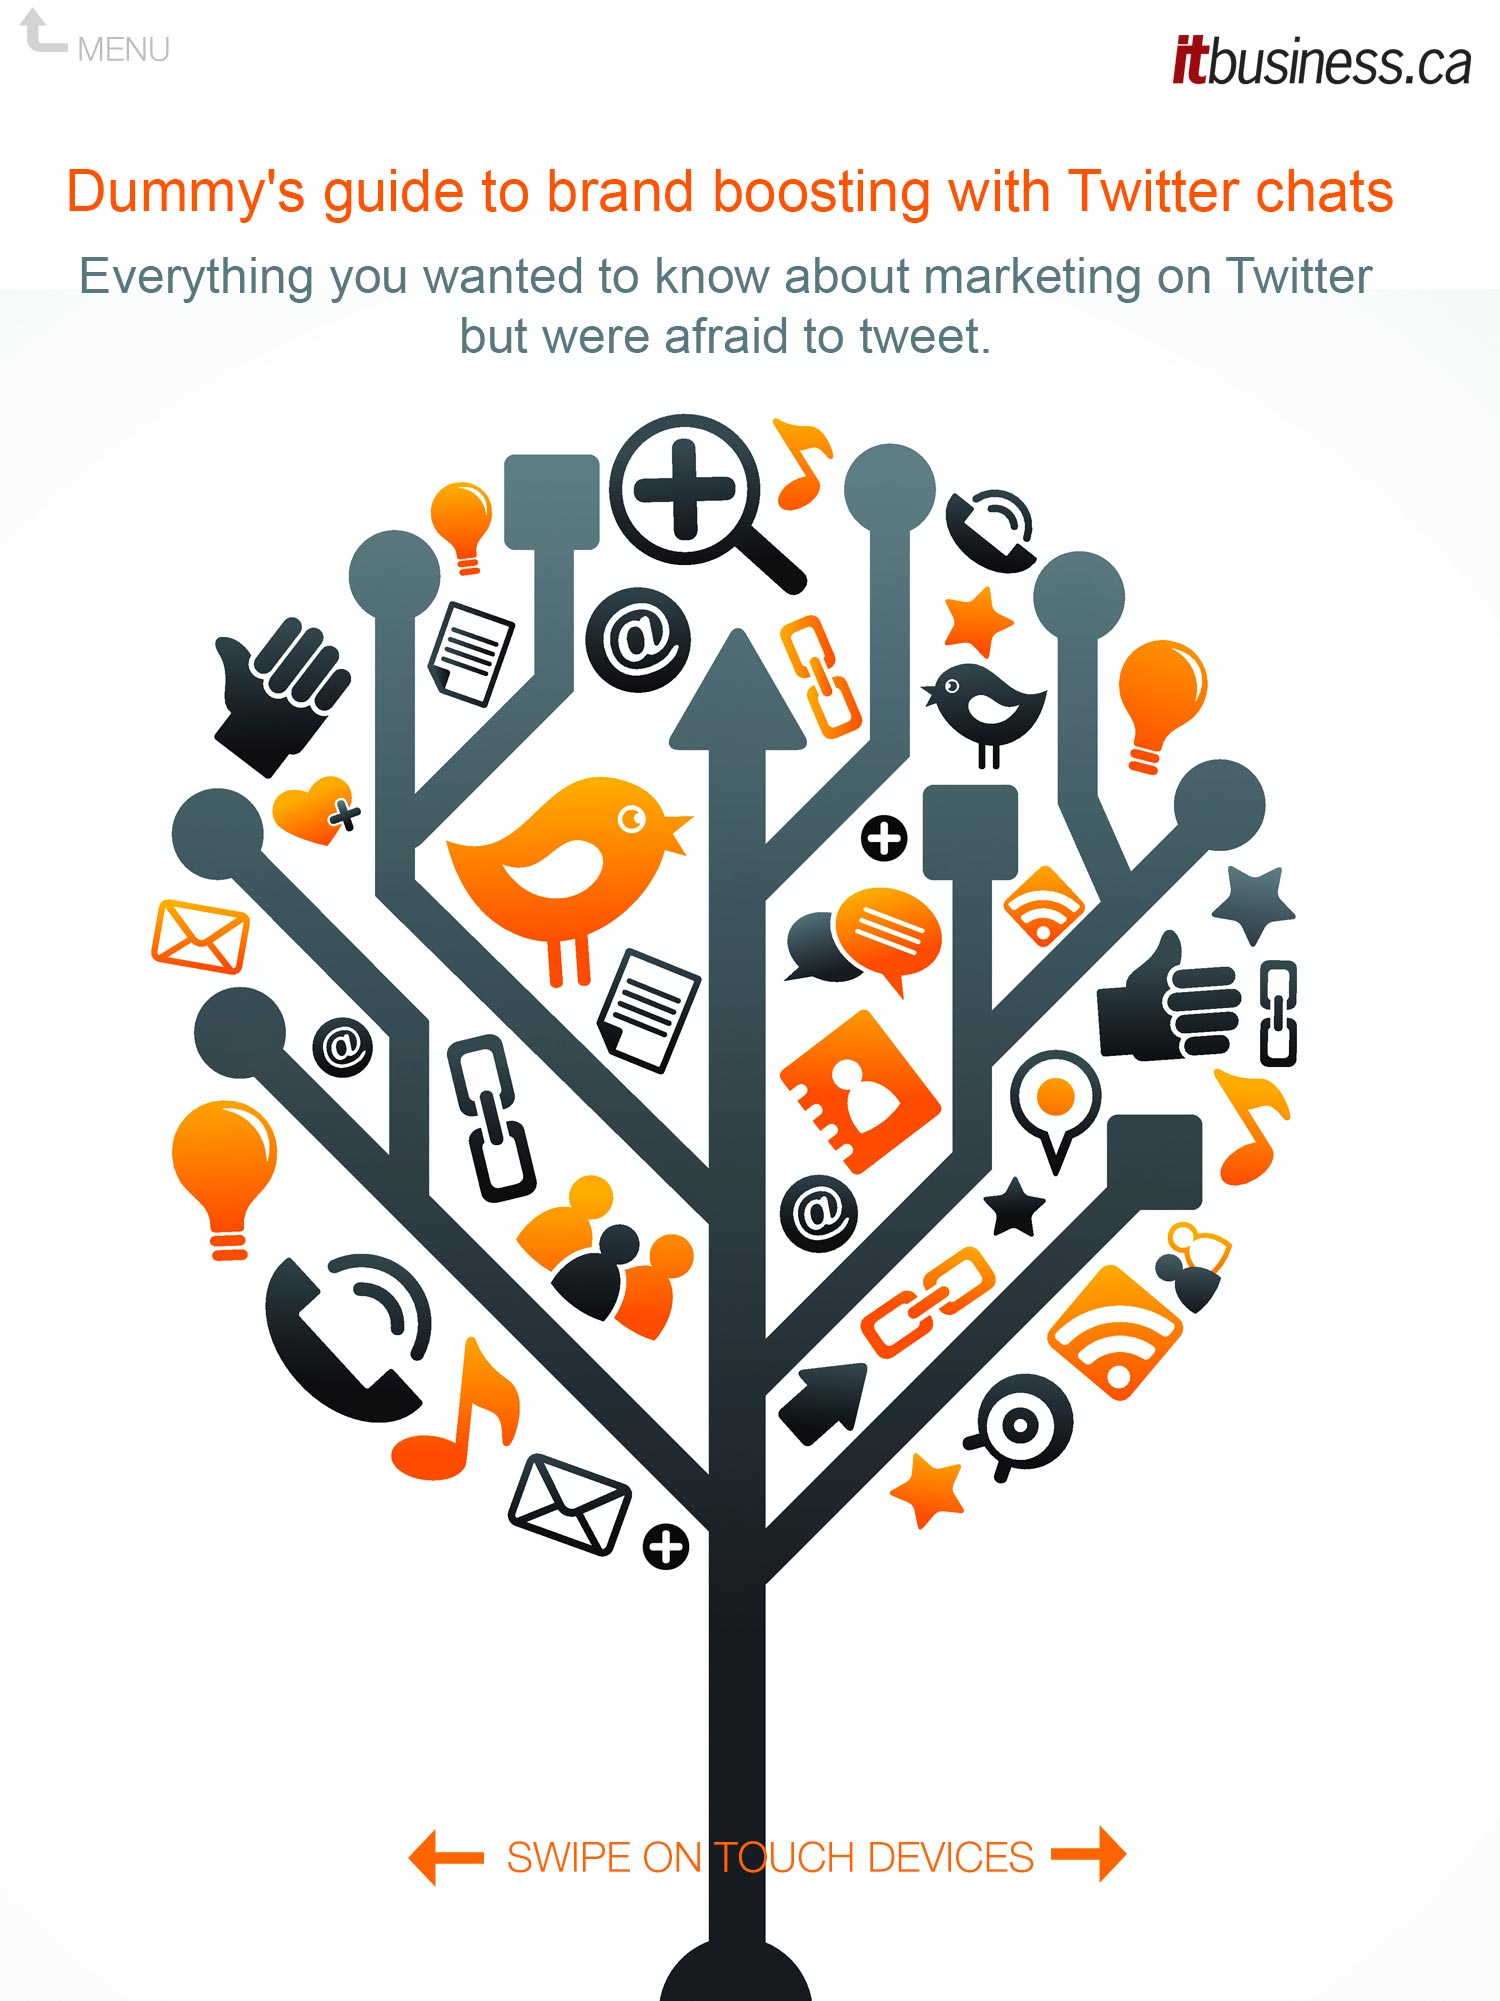 Dummy's guide to brand boosting with Twitter chats